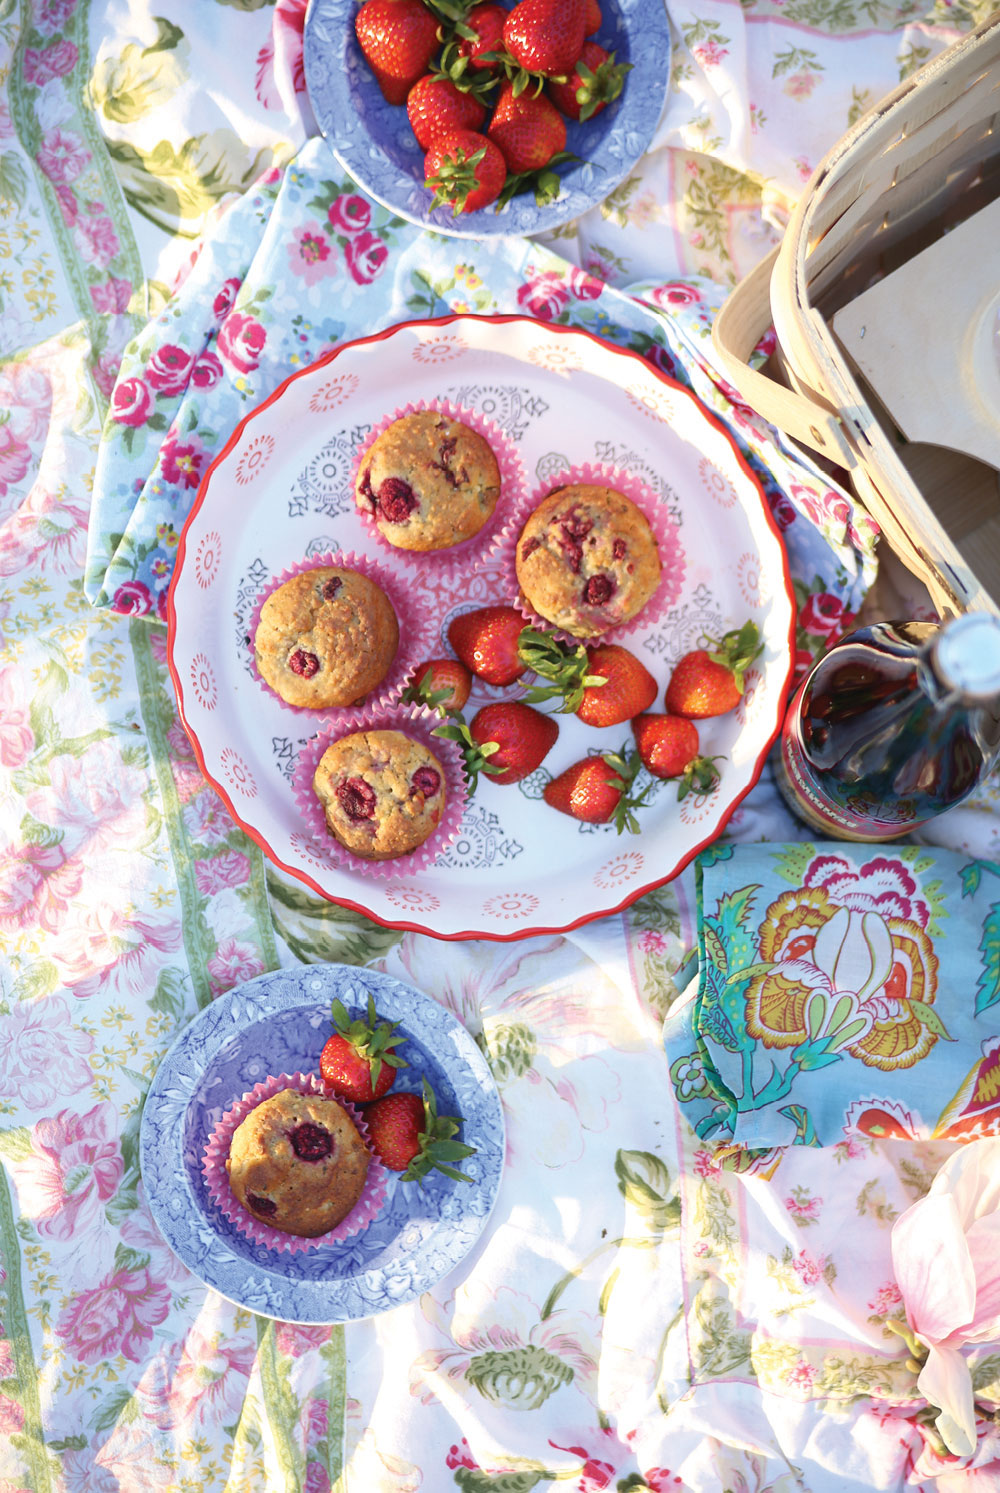 Ella-Leche-Pure-Ella-Raspberry-Lemon-Muffins-gluten-free-vegan-low-sugar5